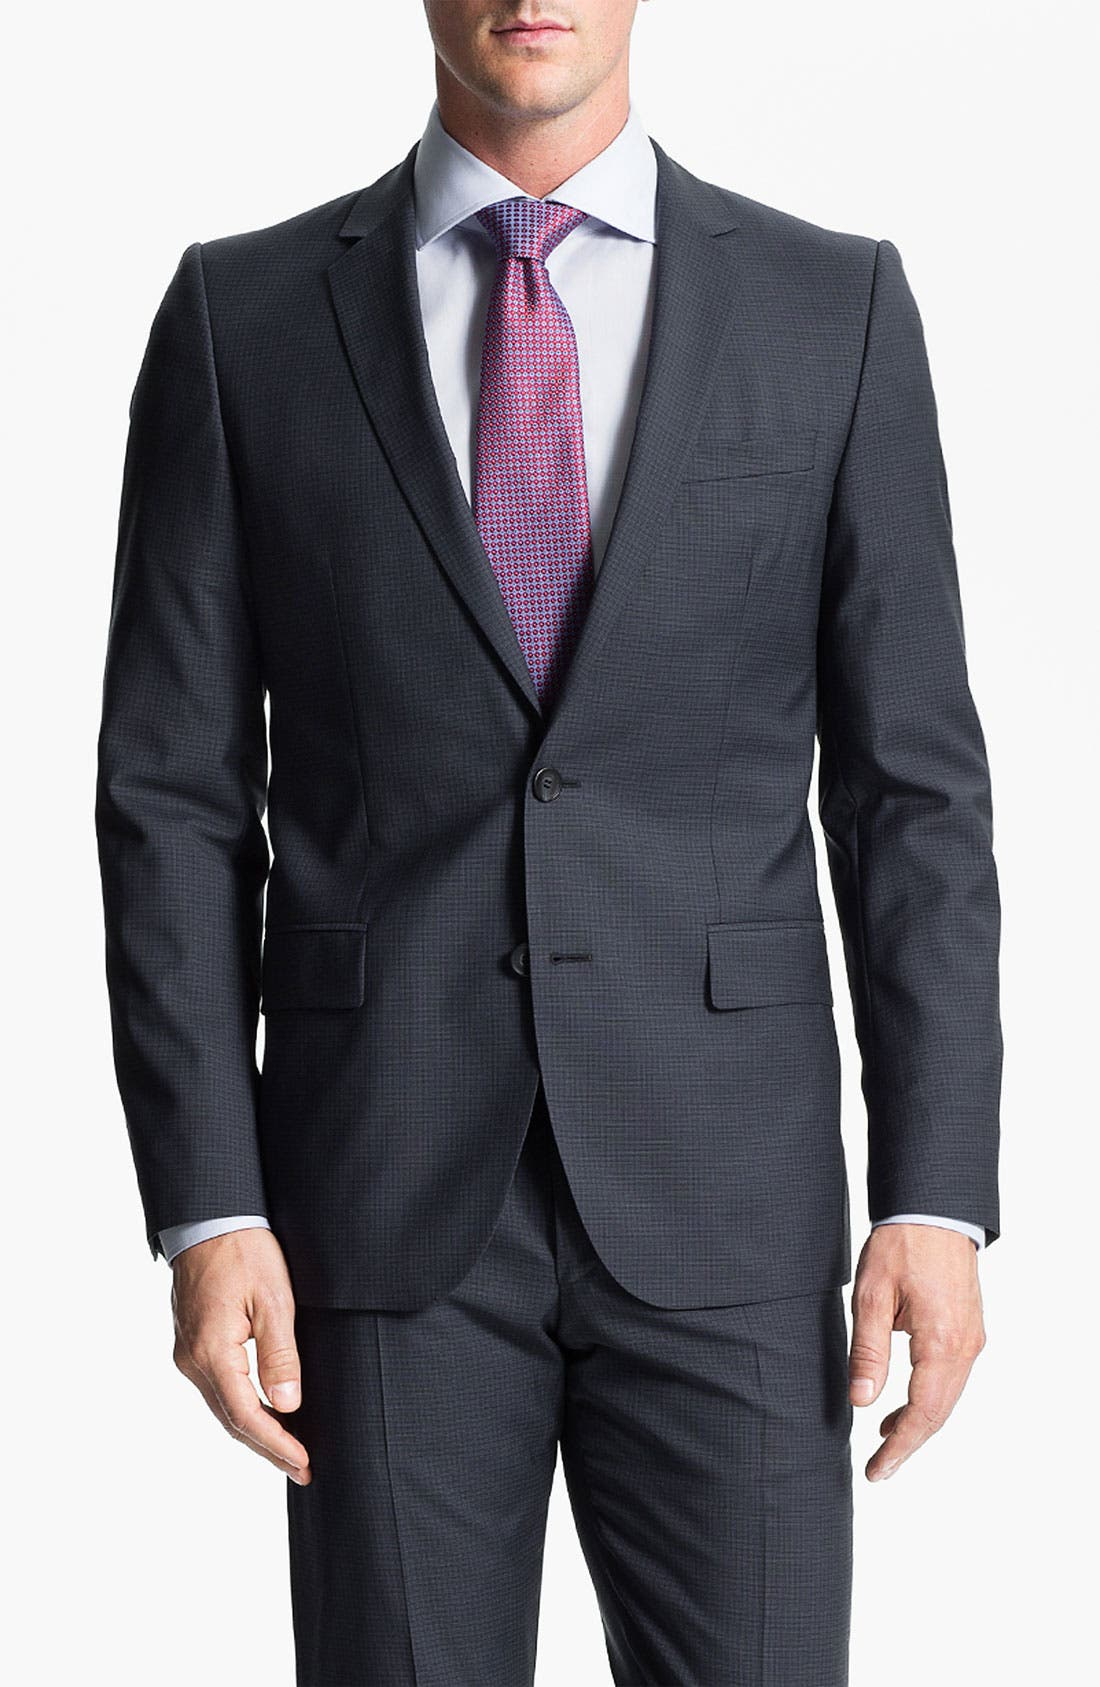 Main Image - HUGO 'Amaro/Heise' Trim Fit Suit